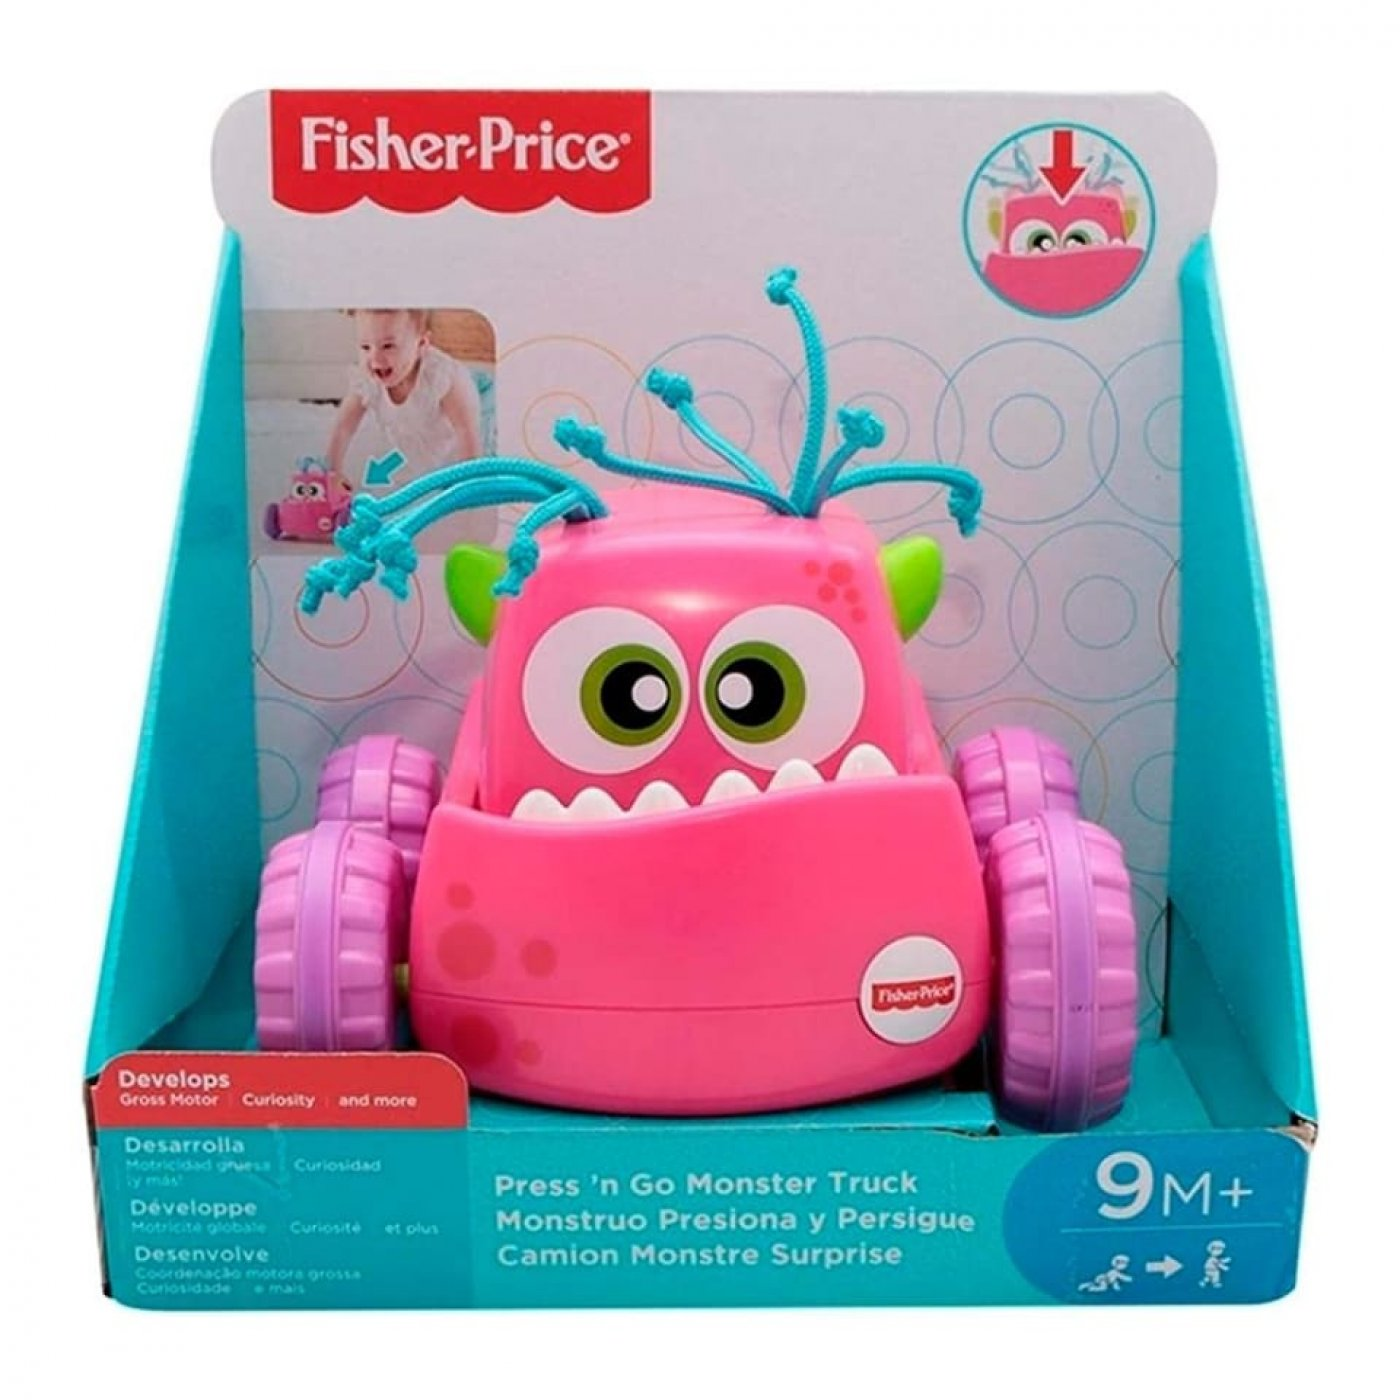 Monstruo Presiona y persigue Fisher Price